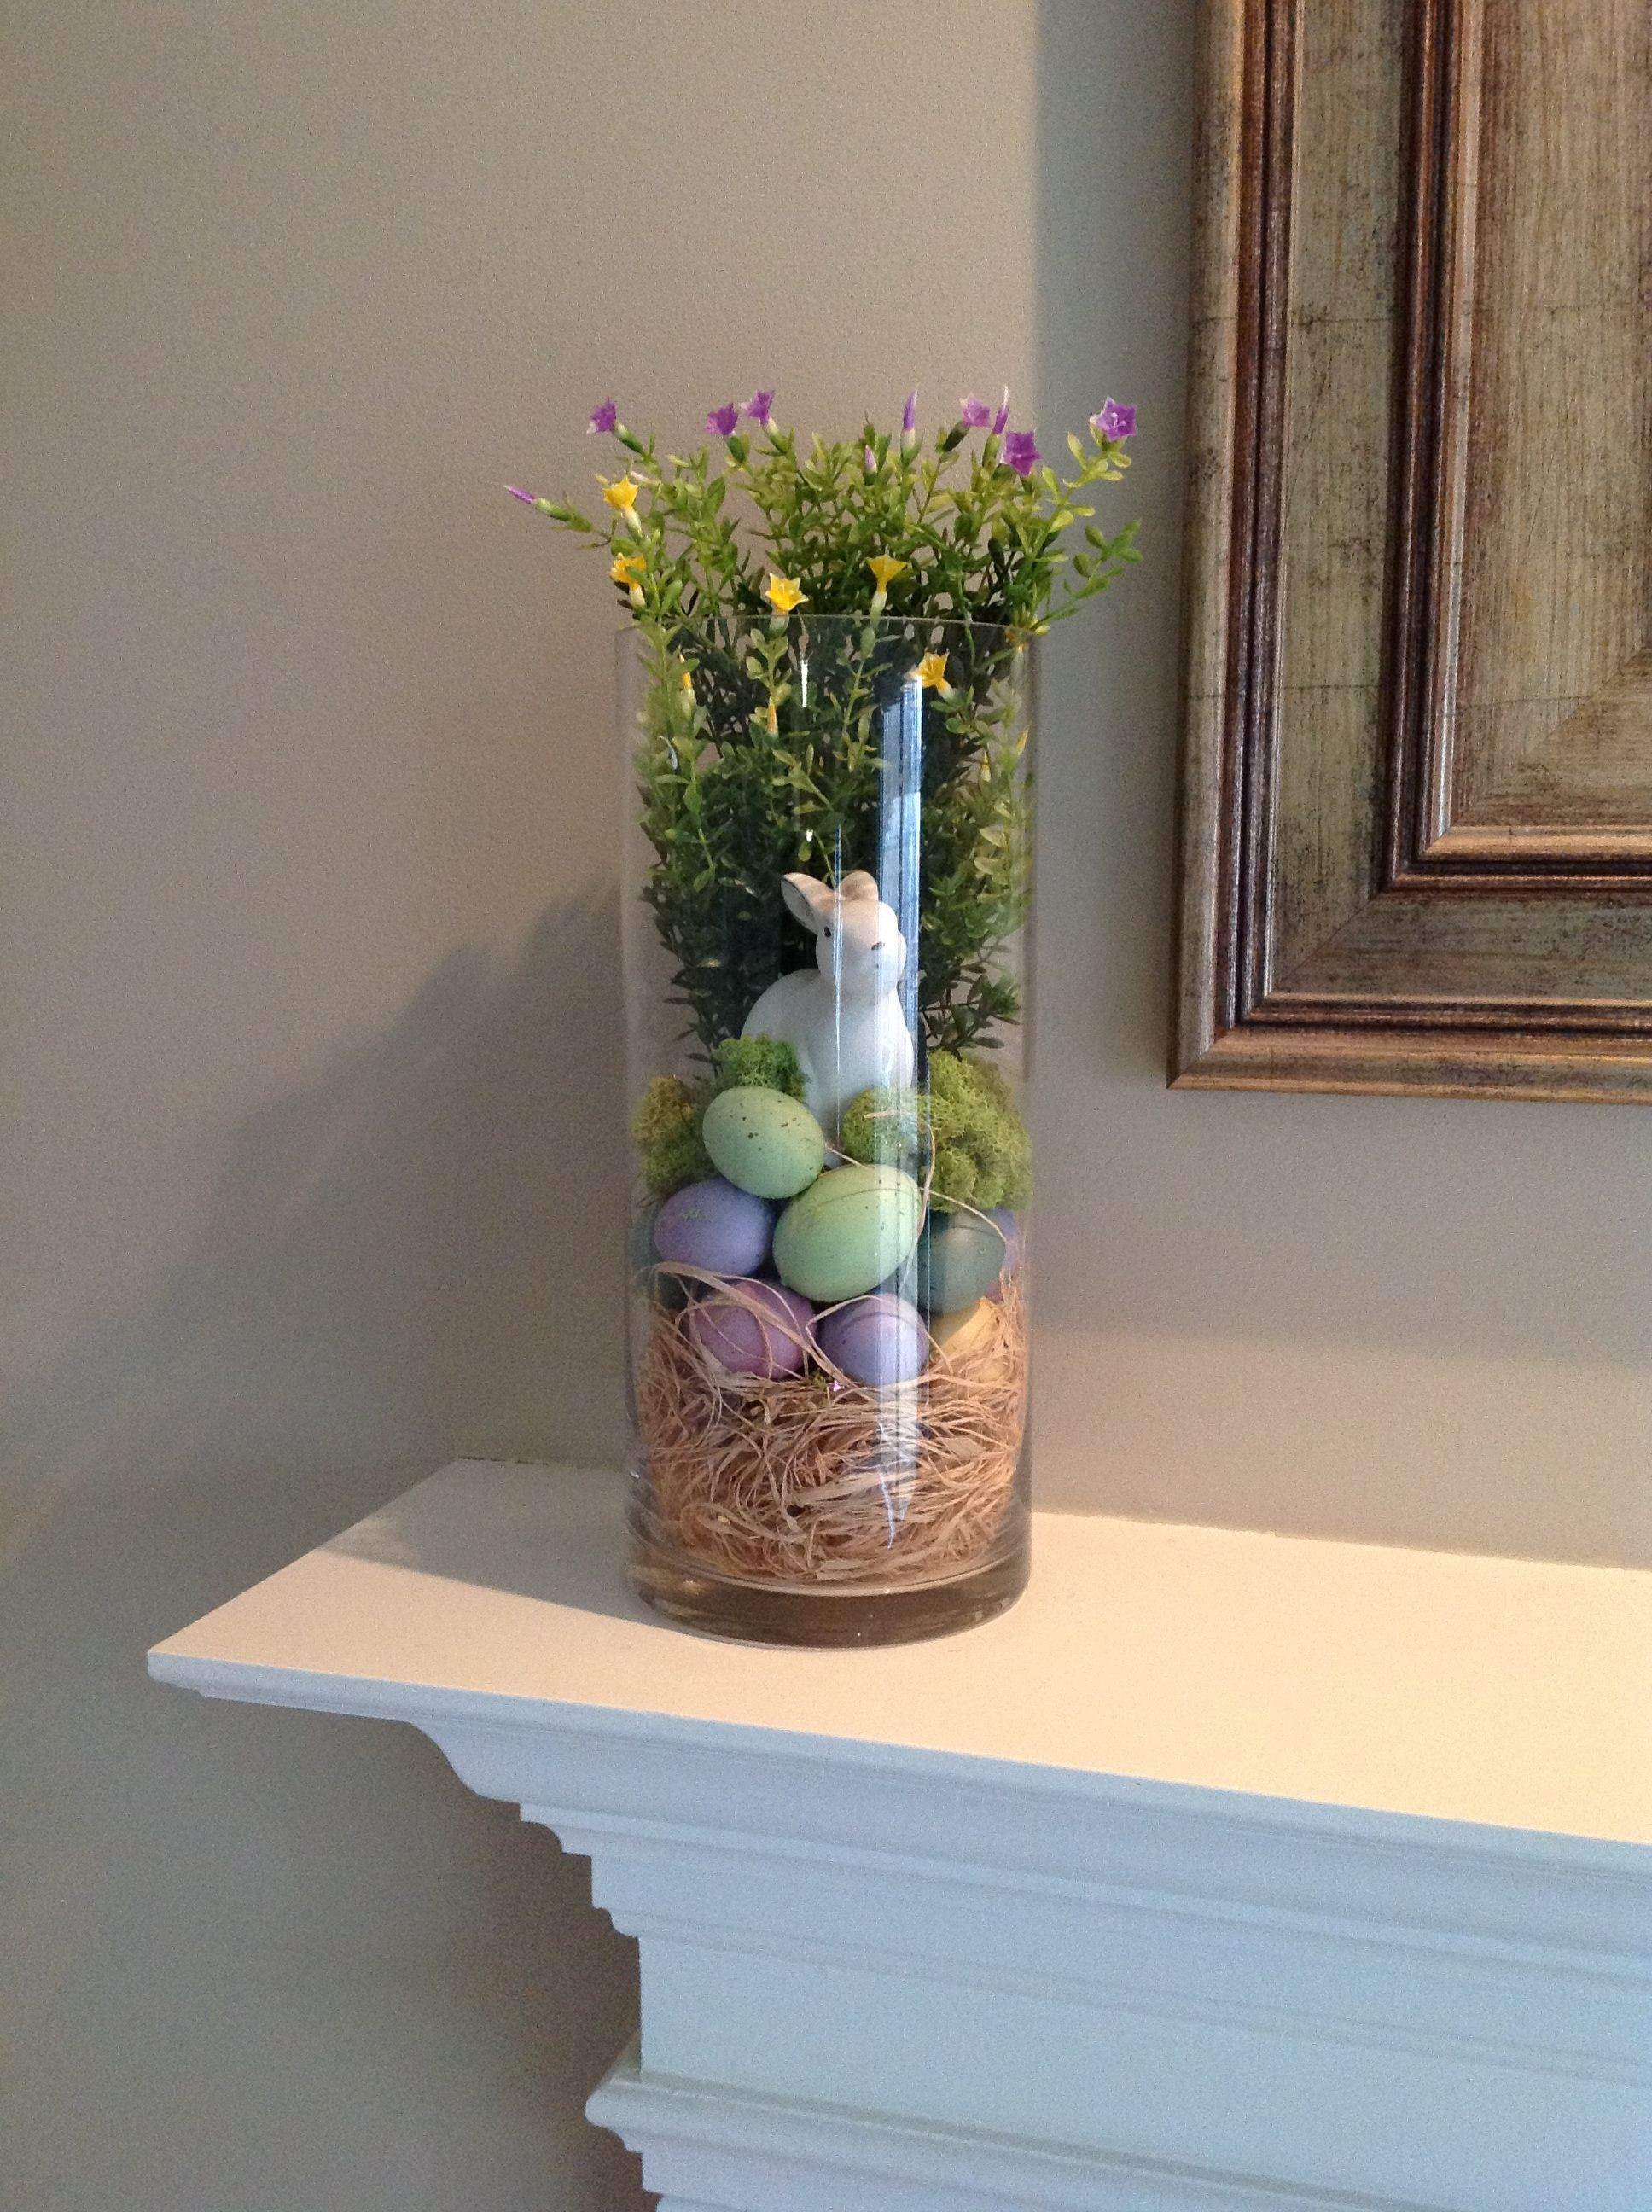 3 foot tall glass vases of hurricane glass vase filler for spring and easter on the mantel with regard to hurricane glass vase filler for spring and easter on the mantel lori lubker pin easter hurricane rabbit